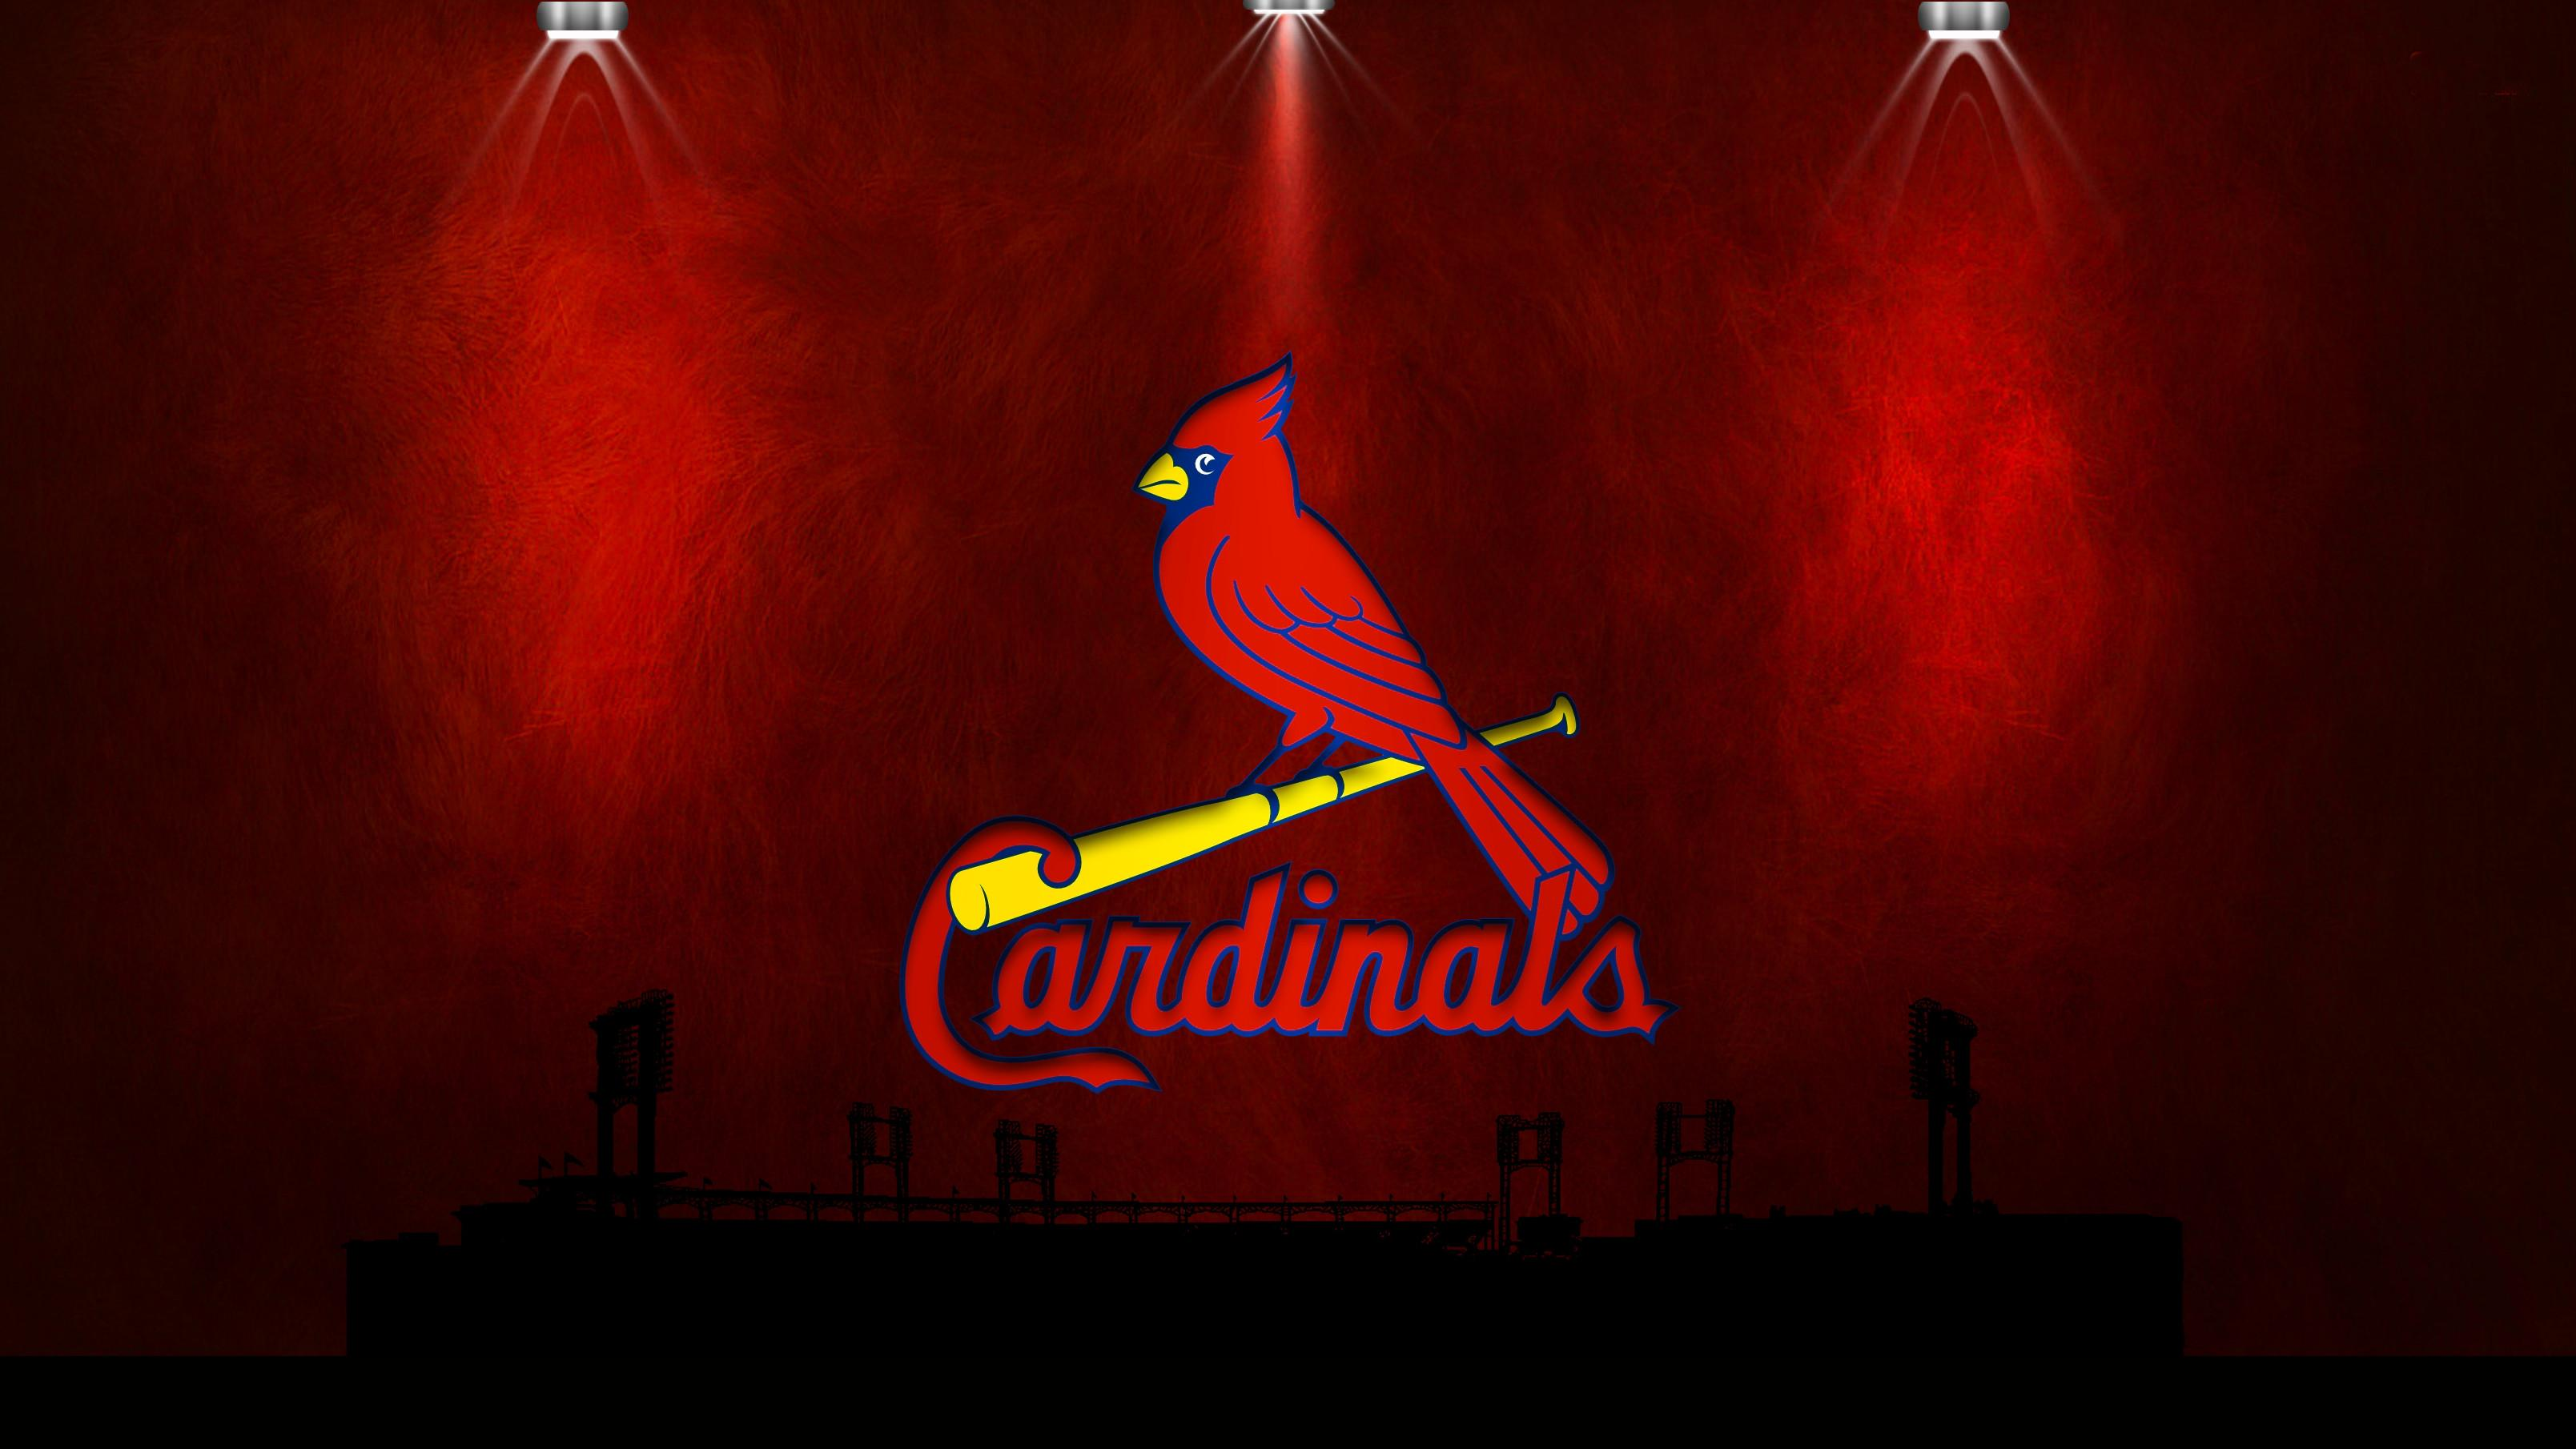 Download St Louis Cardinals Wallpaper Hd Backgrounds Download